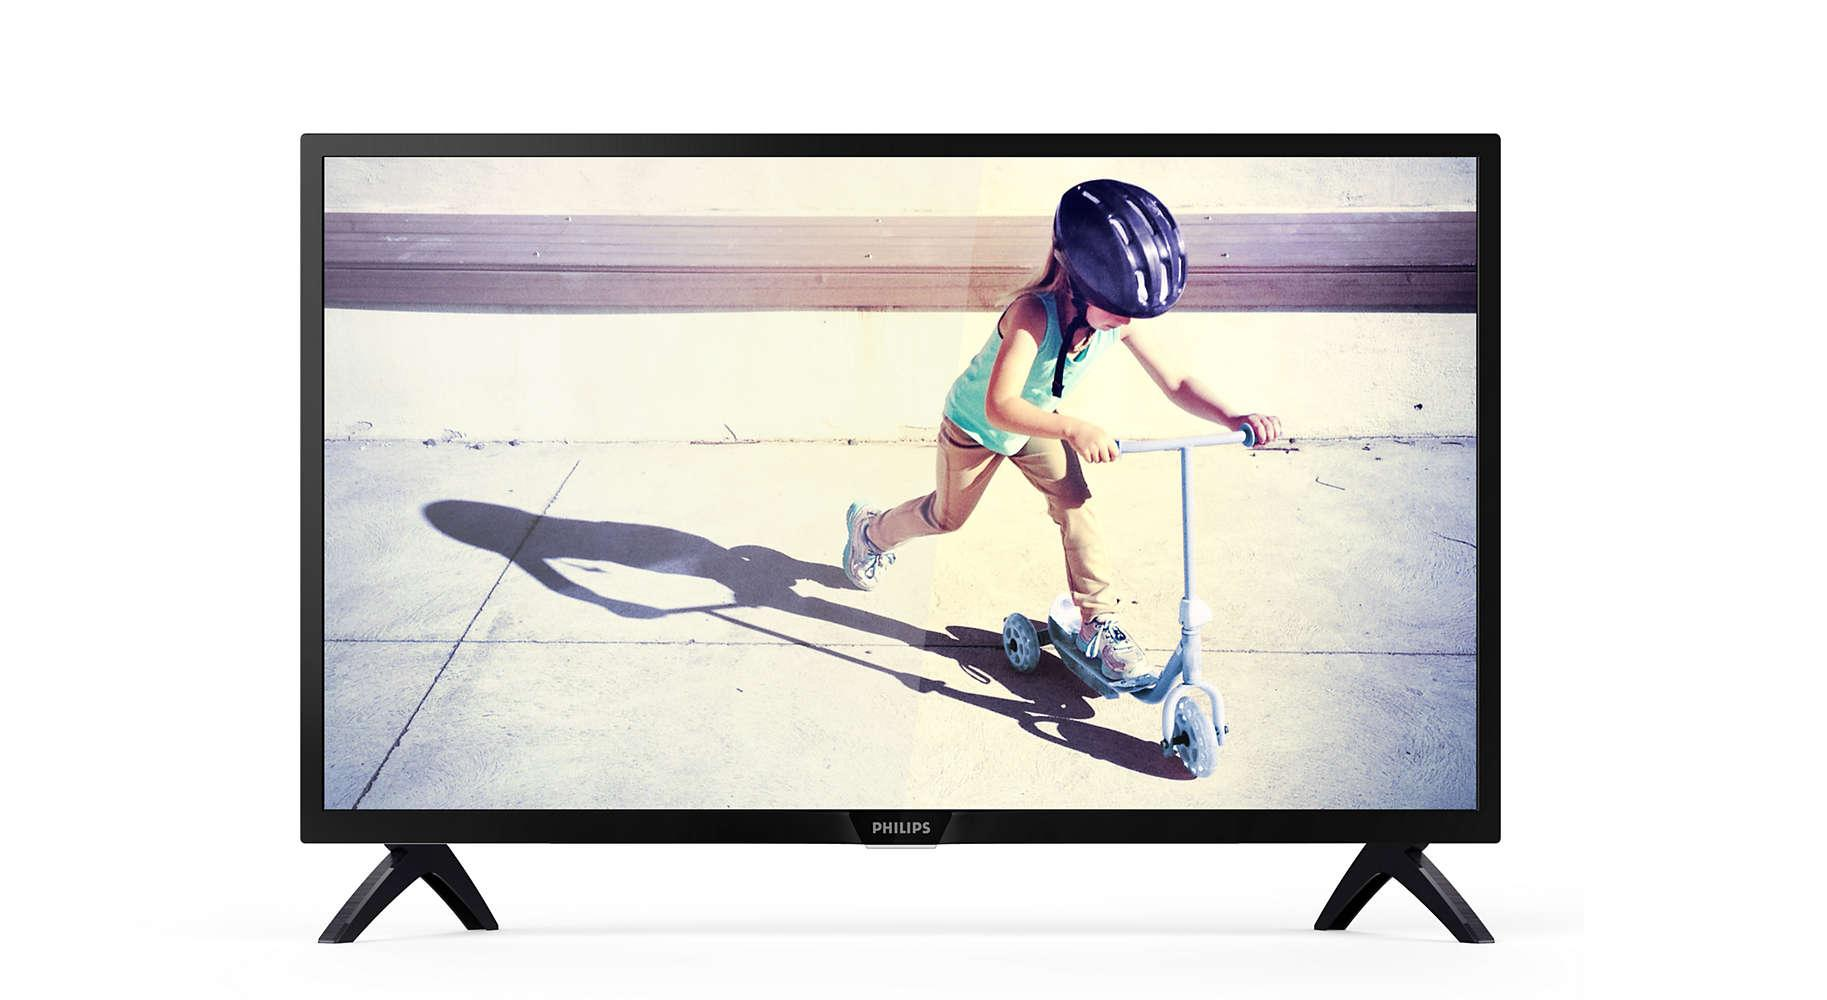 The Cheapest Philips 43Pft5102 43 Full Hd Ultra Slim Led Smart Tv W Pixel Plus Hd 2 X Hdmi 2 X Usb Inputs Online